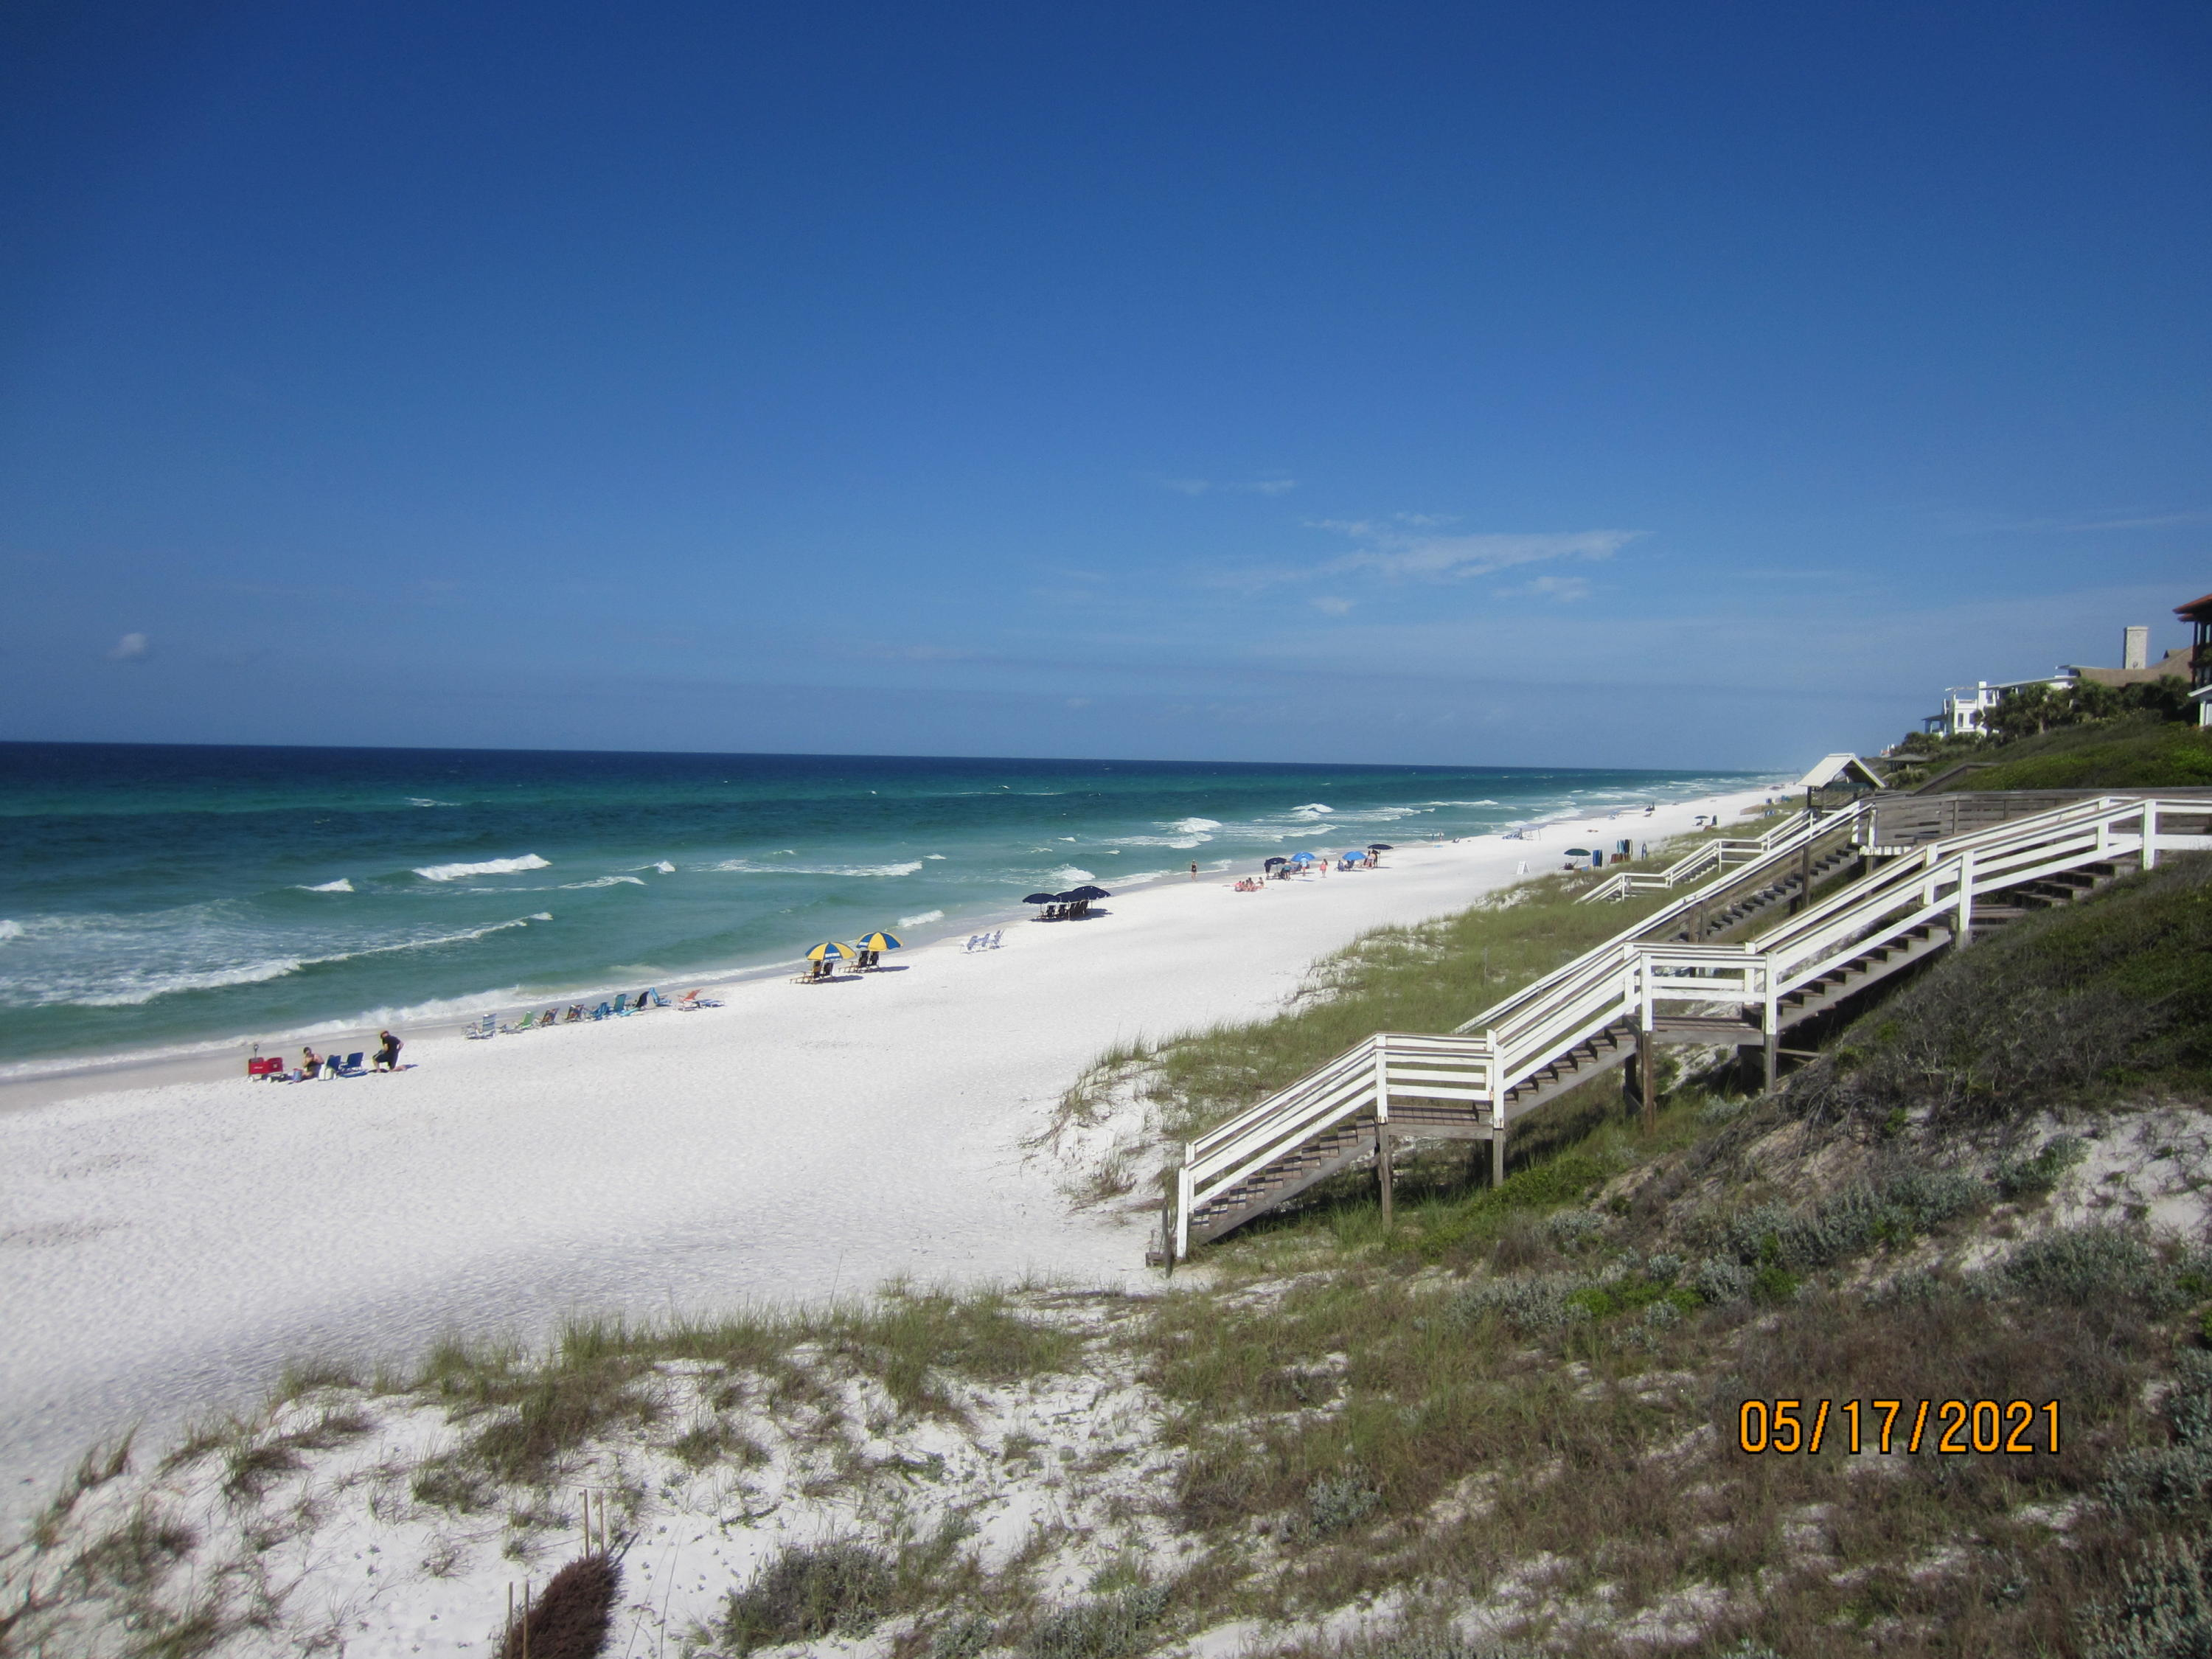 SIX individual residential lots sold together.  Each lot is 50x135.  All six lots are contiguous and located in Block 1 in Gulf Shore Manor Subd.  in Seagrove Beach.  This is a fast developing area along CR 30A about one mile East of the Holiday Town of SEASIDE.  Gulf Shore Manor has four developed Beach Accesses.  These six lots are less than five blocks to the Beach.  There is no HOA that requires membership.  These lots are being sold together and they are undeveloped and sold 'as-is'  Public water and sewer are available thru Regional Utilities.  Block 1 in Gulf Shore Manor borders the Florida State Forest to the North and also to the East.  Approval for the road between Blocks 1 & 2 is received and the road is now being developed.  Quiet location yet near the Beach and 30A.